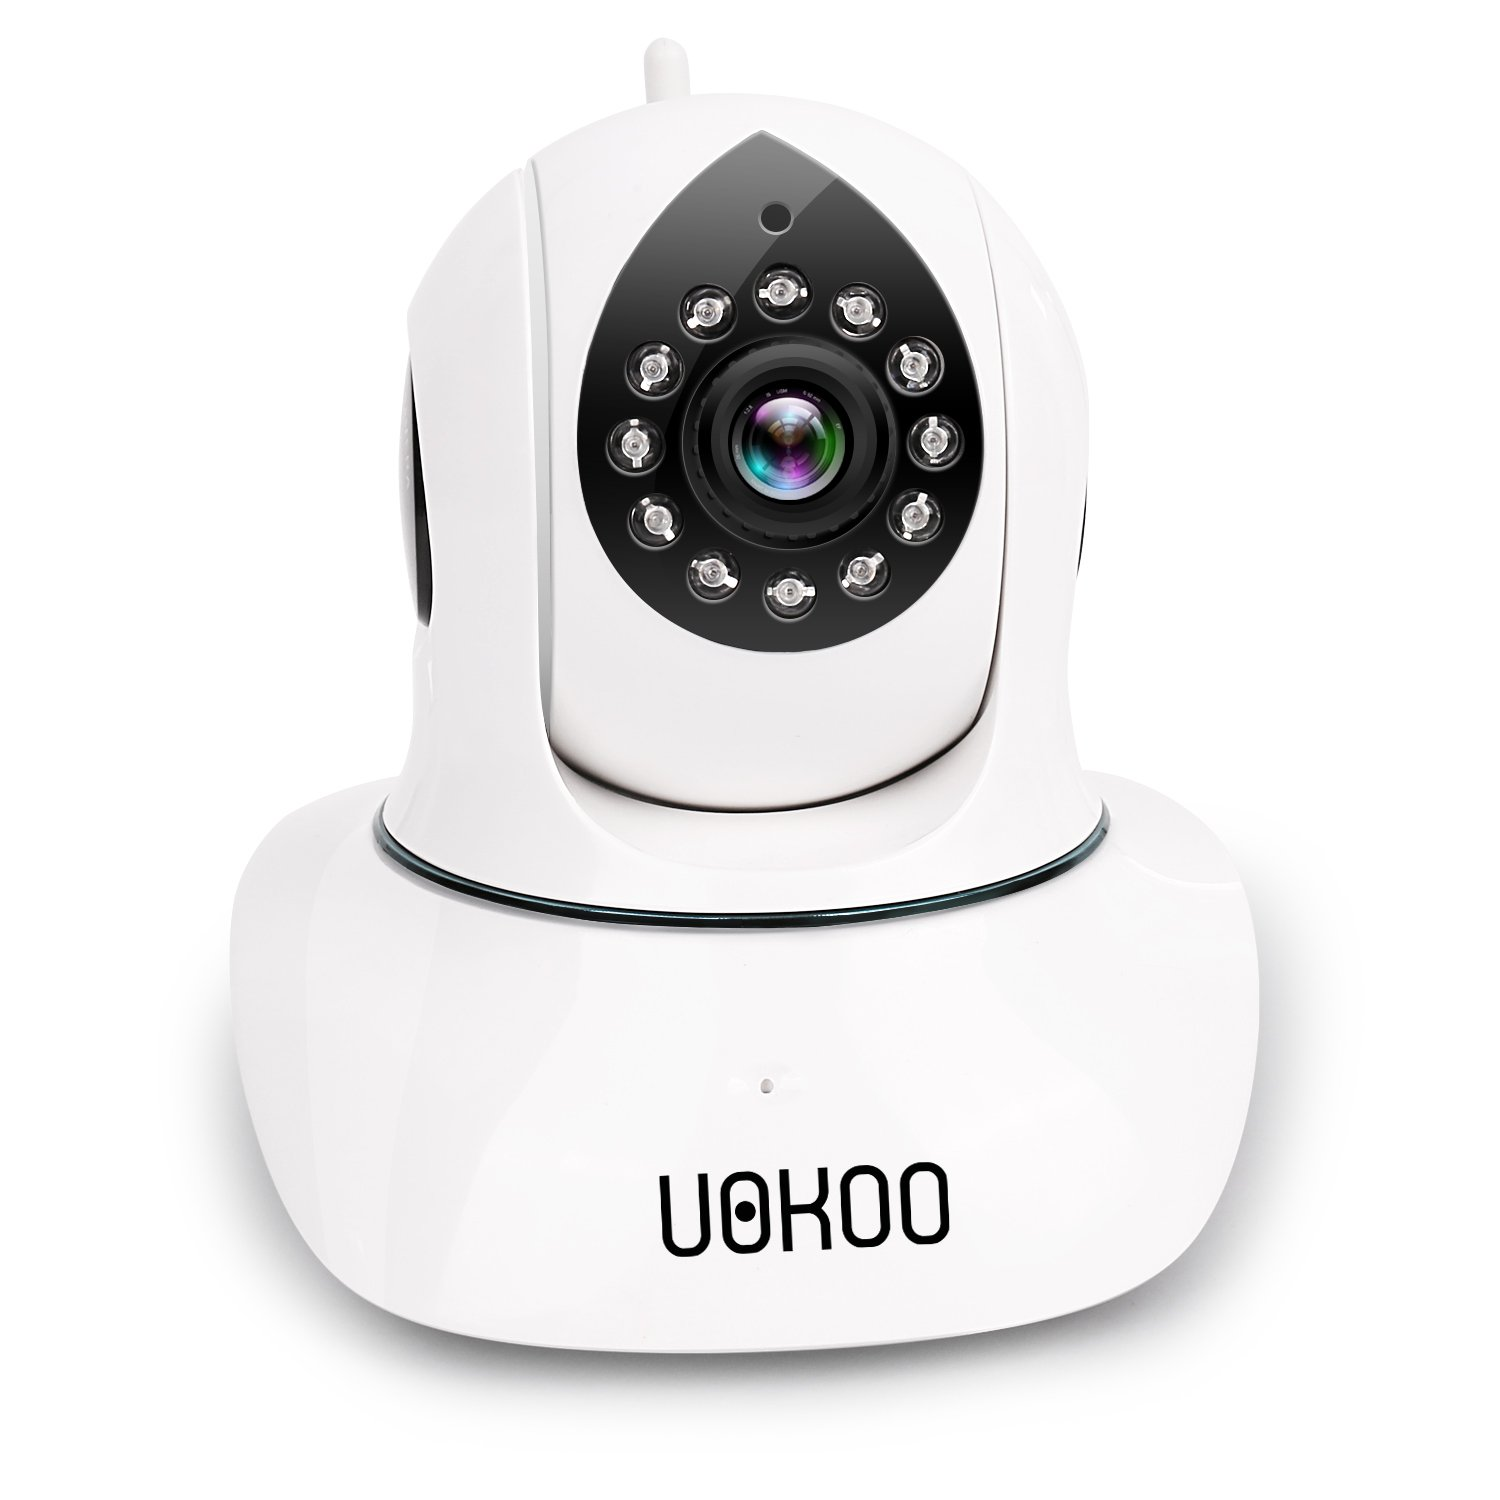 Wireless Security Camera, UOKOO HD WiFi Surveillance IP Camera with Email Alert/Two-Way Audio/Pan&Tilt/Night Vision Baby Monitor (Upgraded Version) (Upgraded Version)